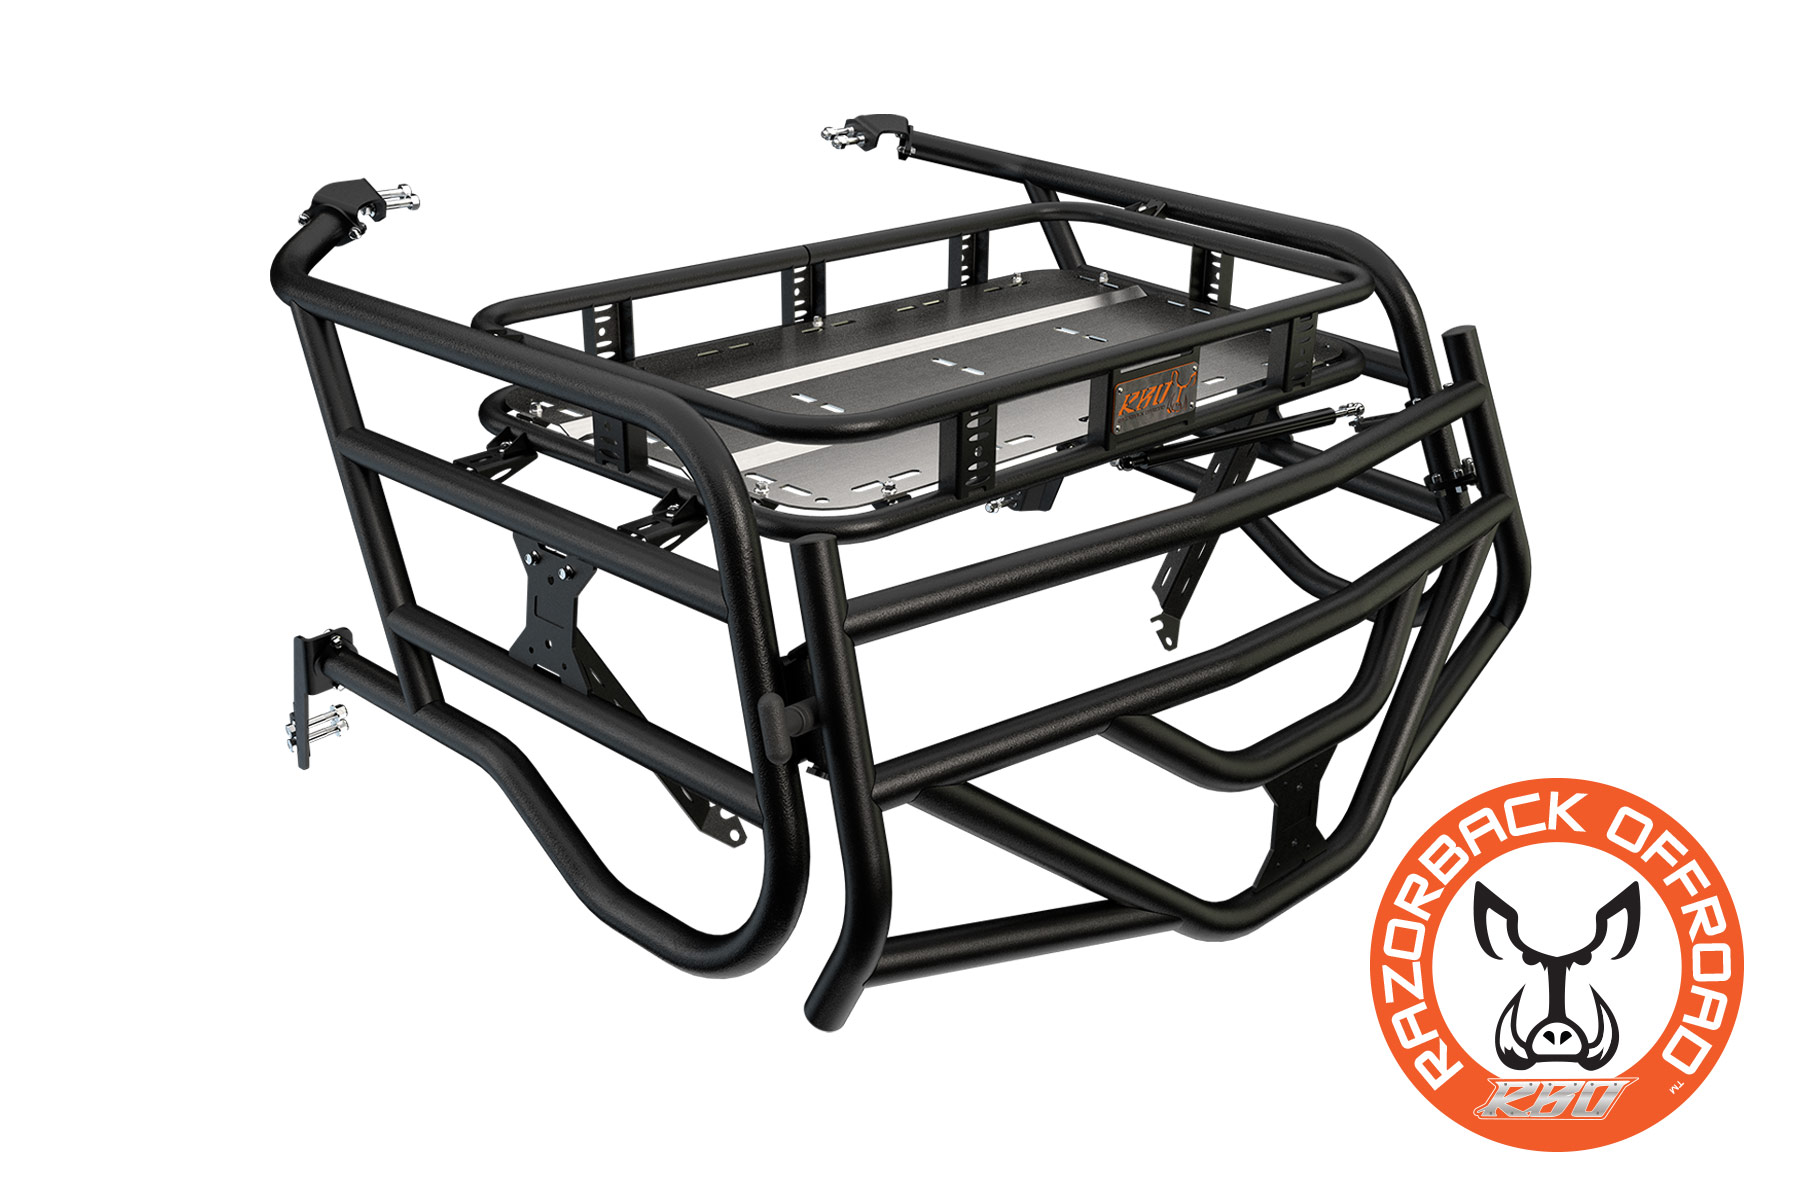 4 Four Seater Polaris Rzr Expedition Cargo Rack